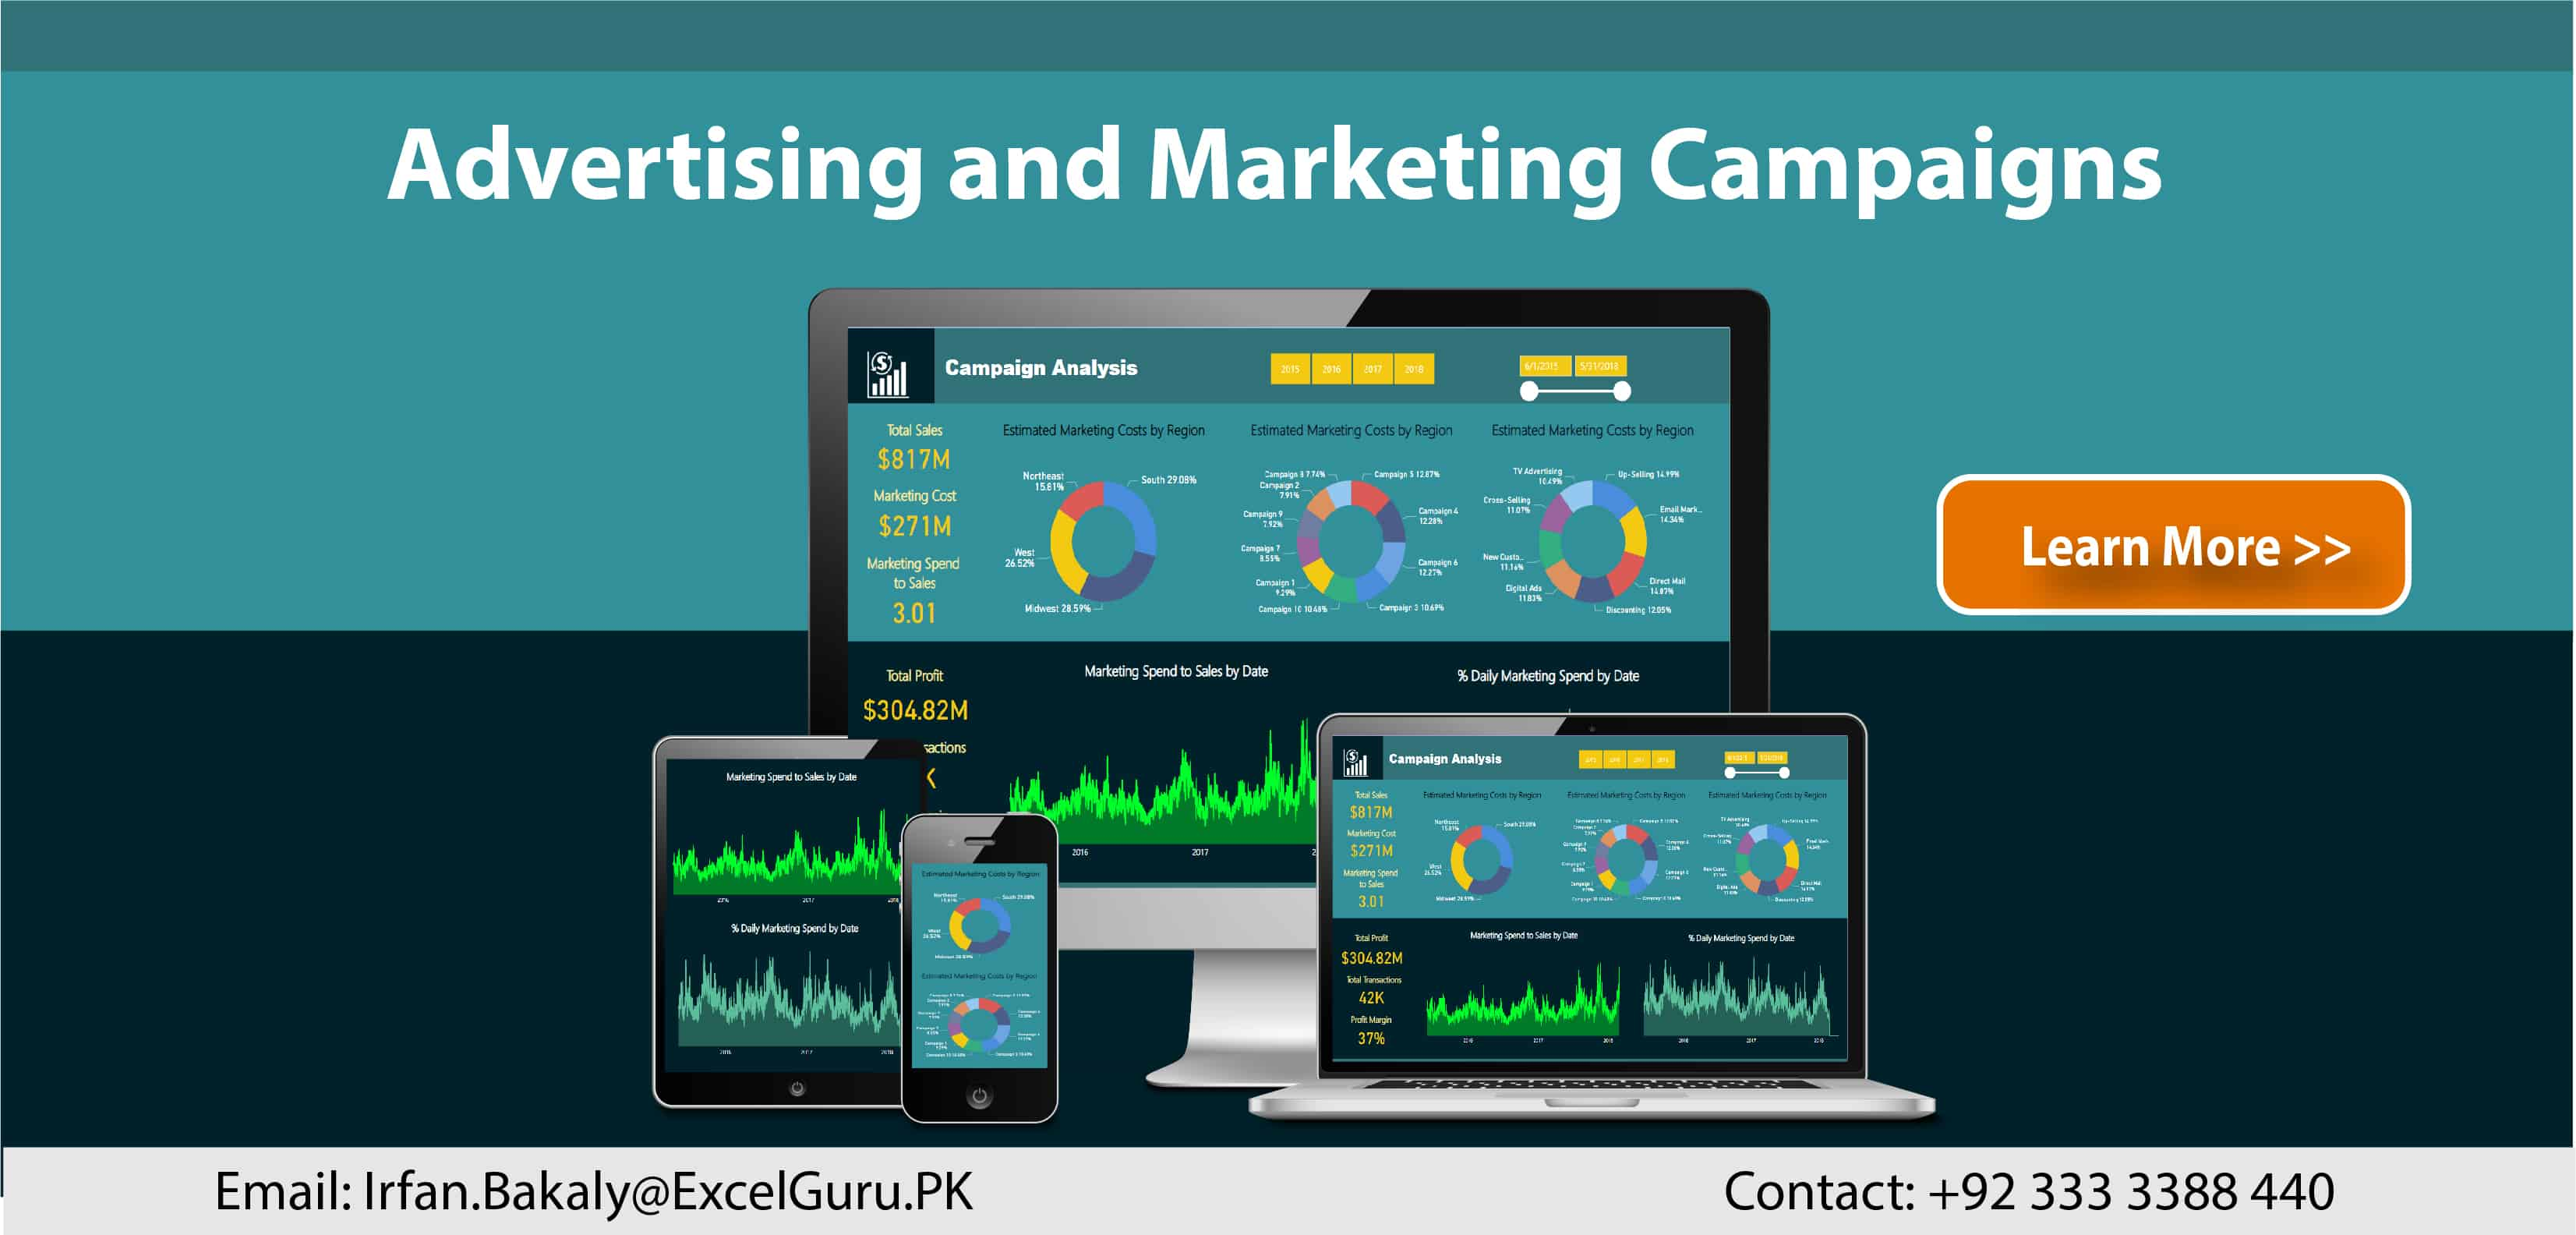 Advertising and Marketing Campaigns using Power BI